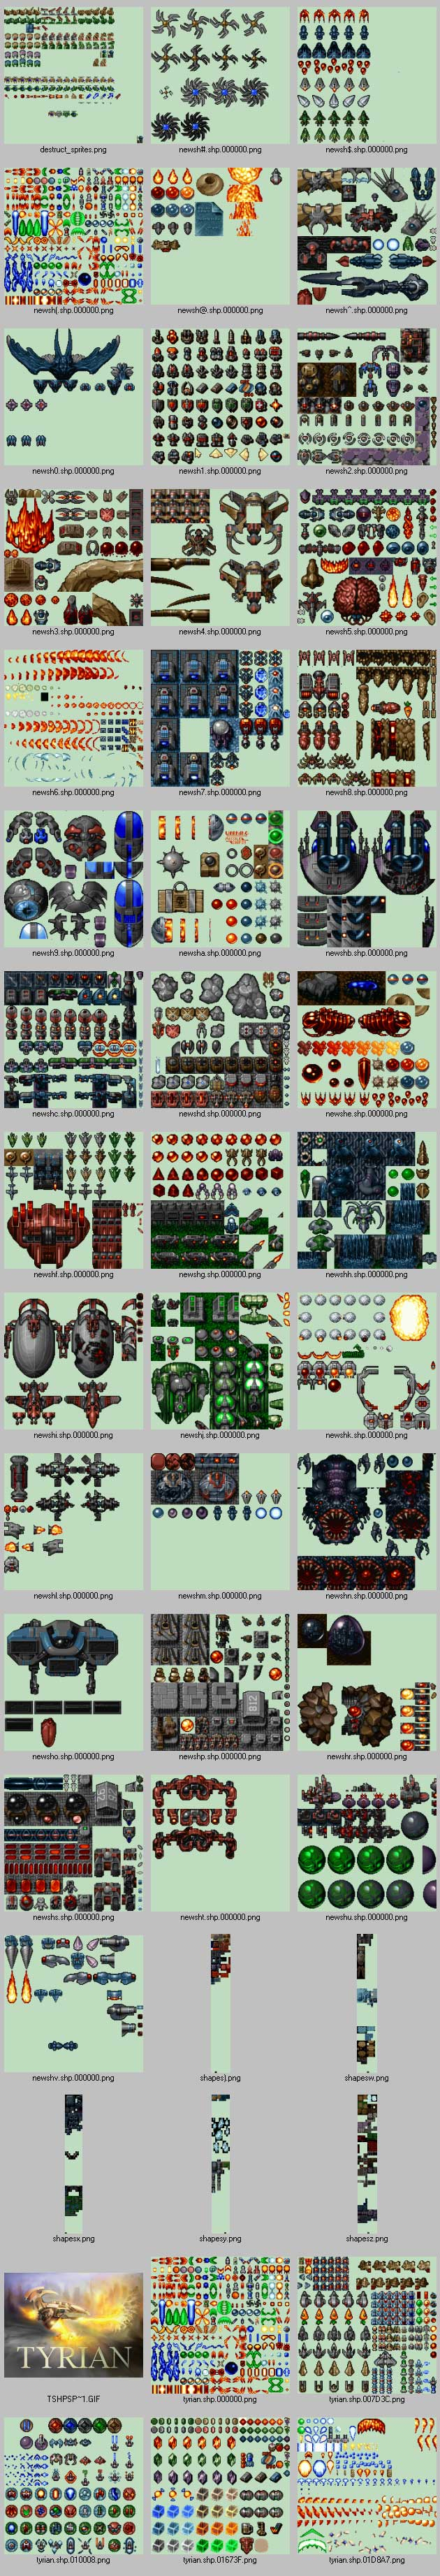 Tyrian Sprites and Tiles